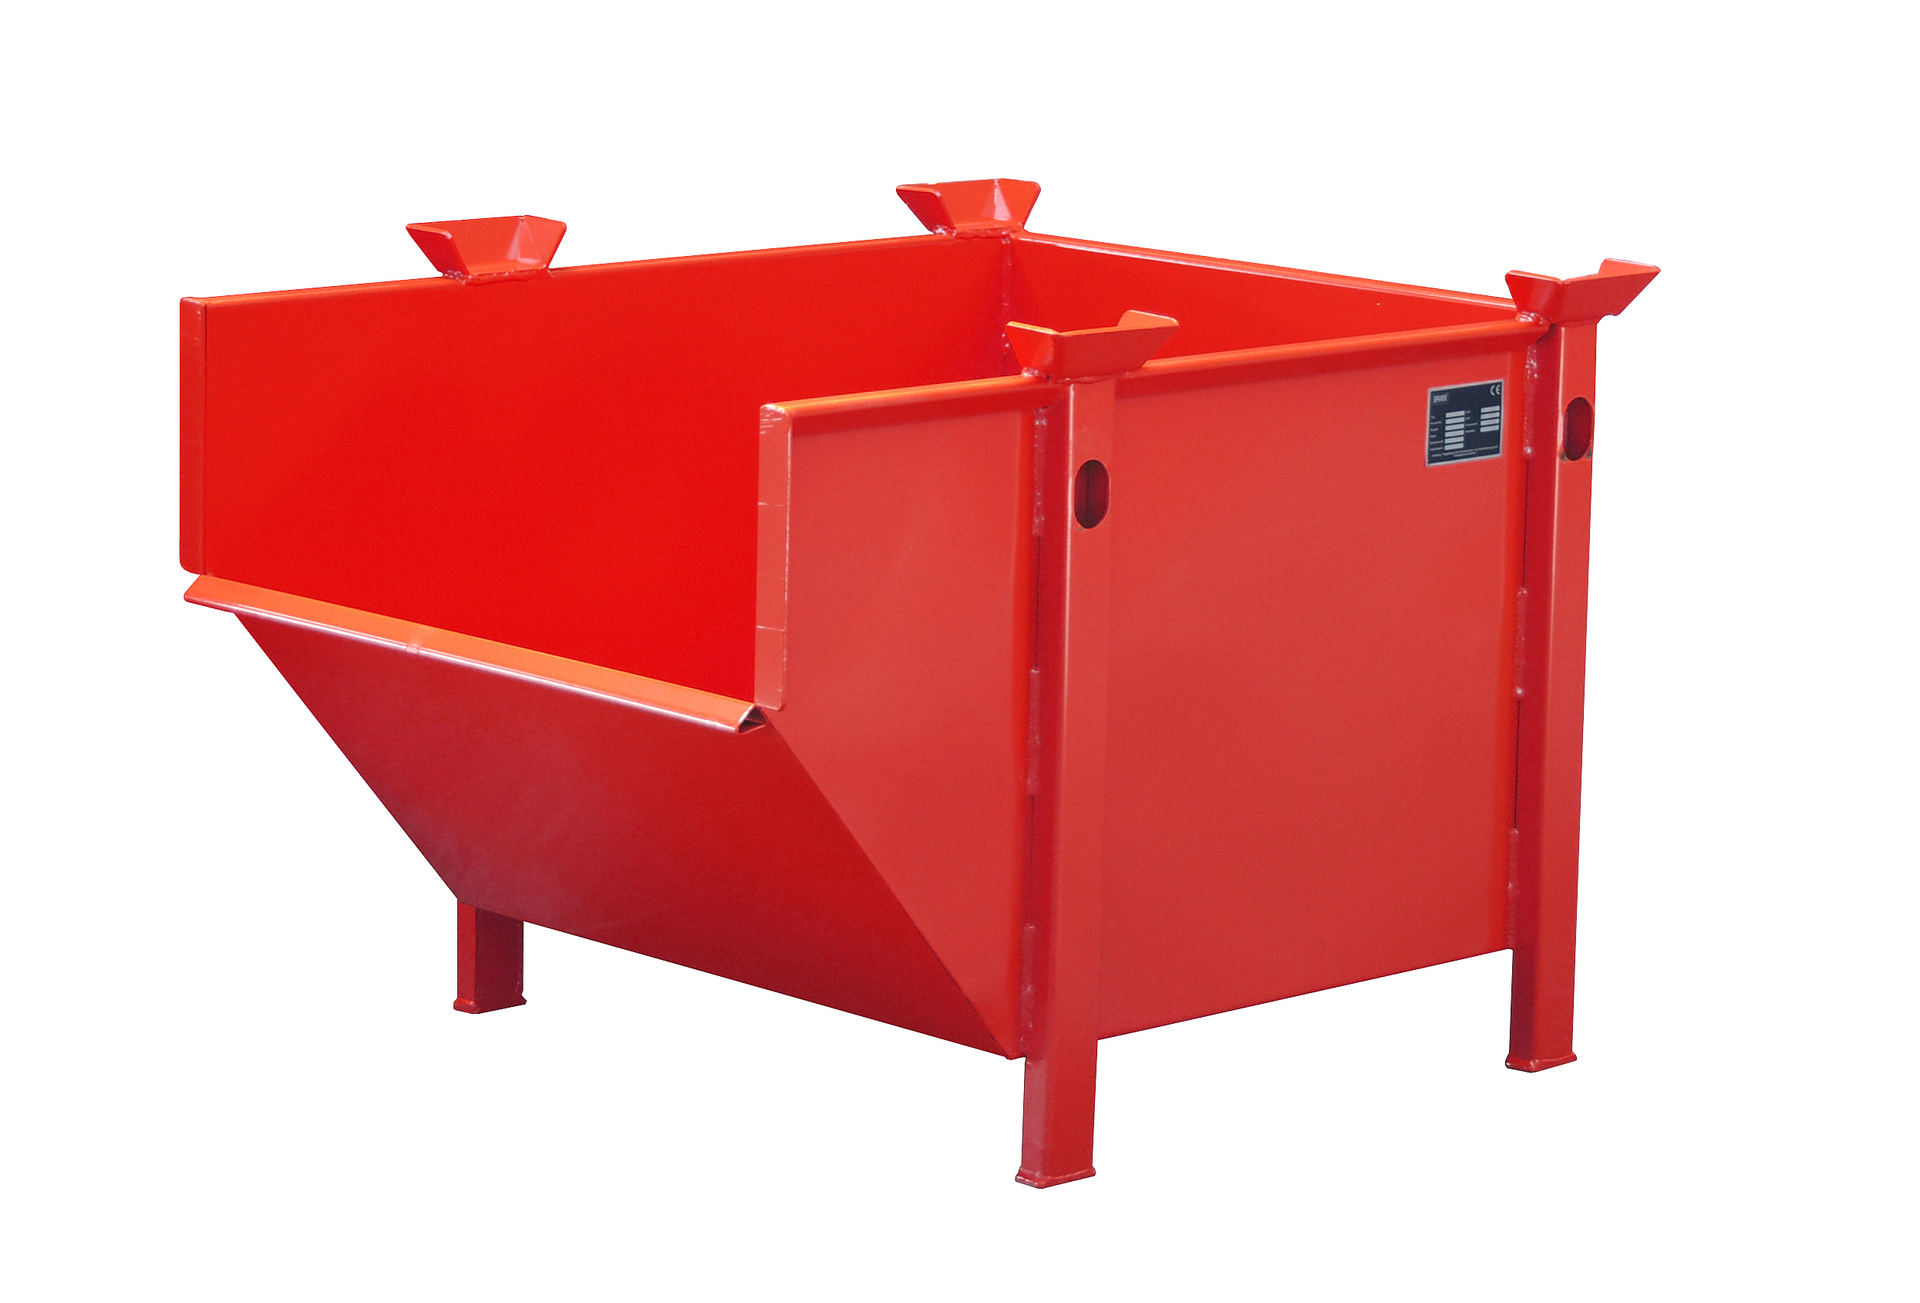 Bauer Südlohn® BBM material container, for small parts